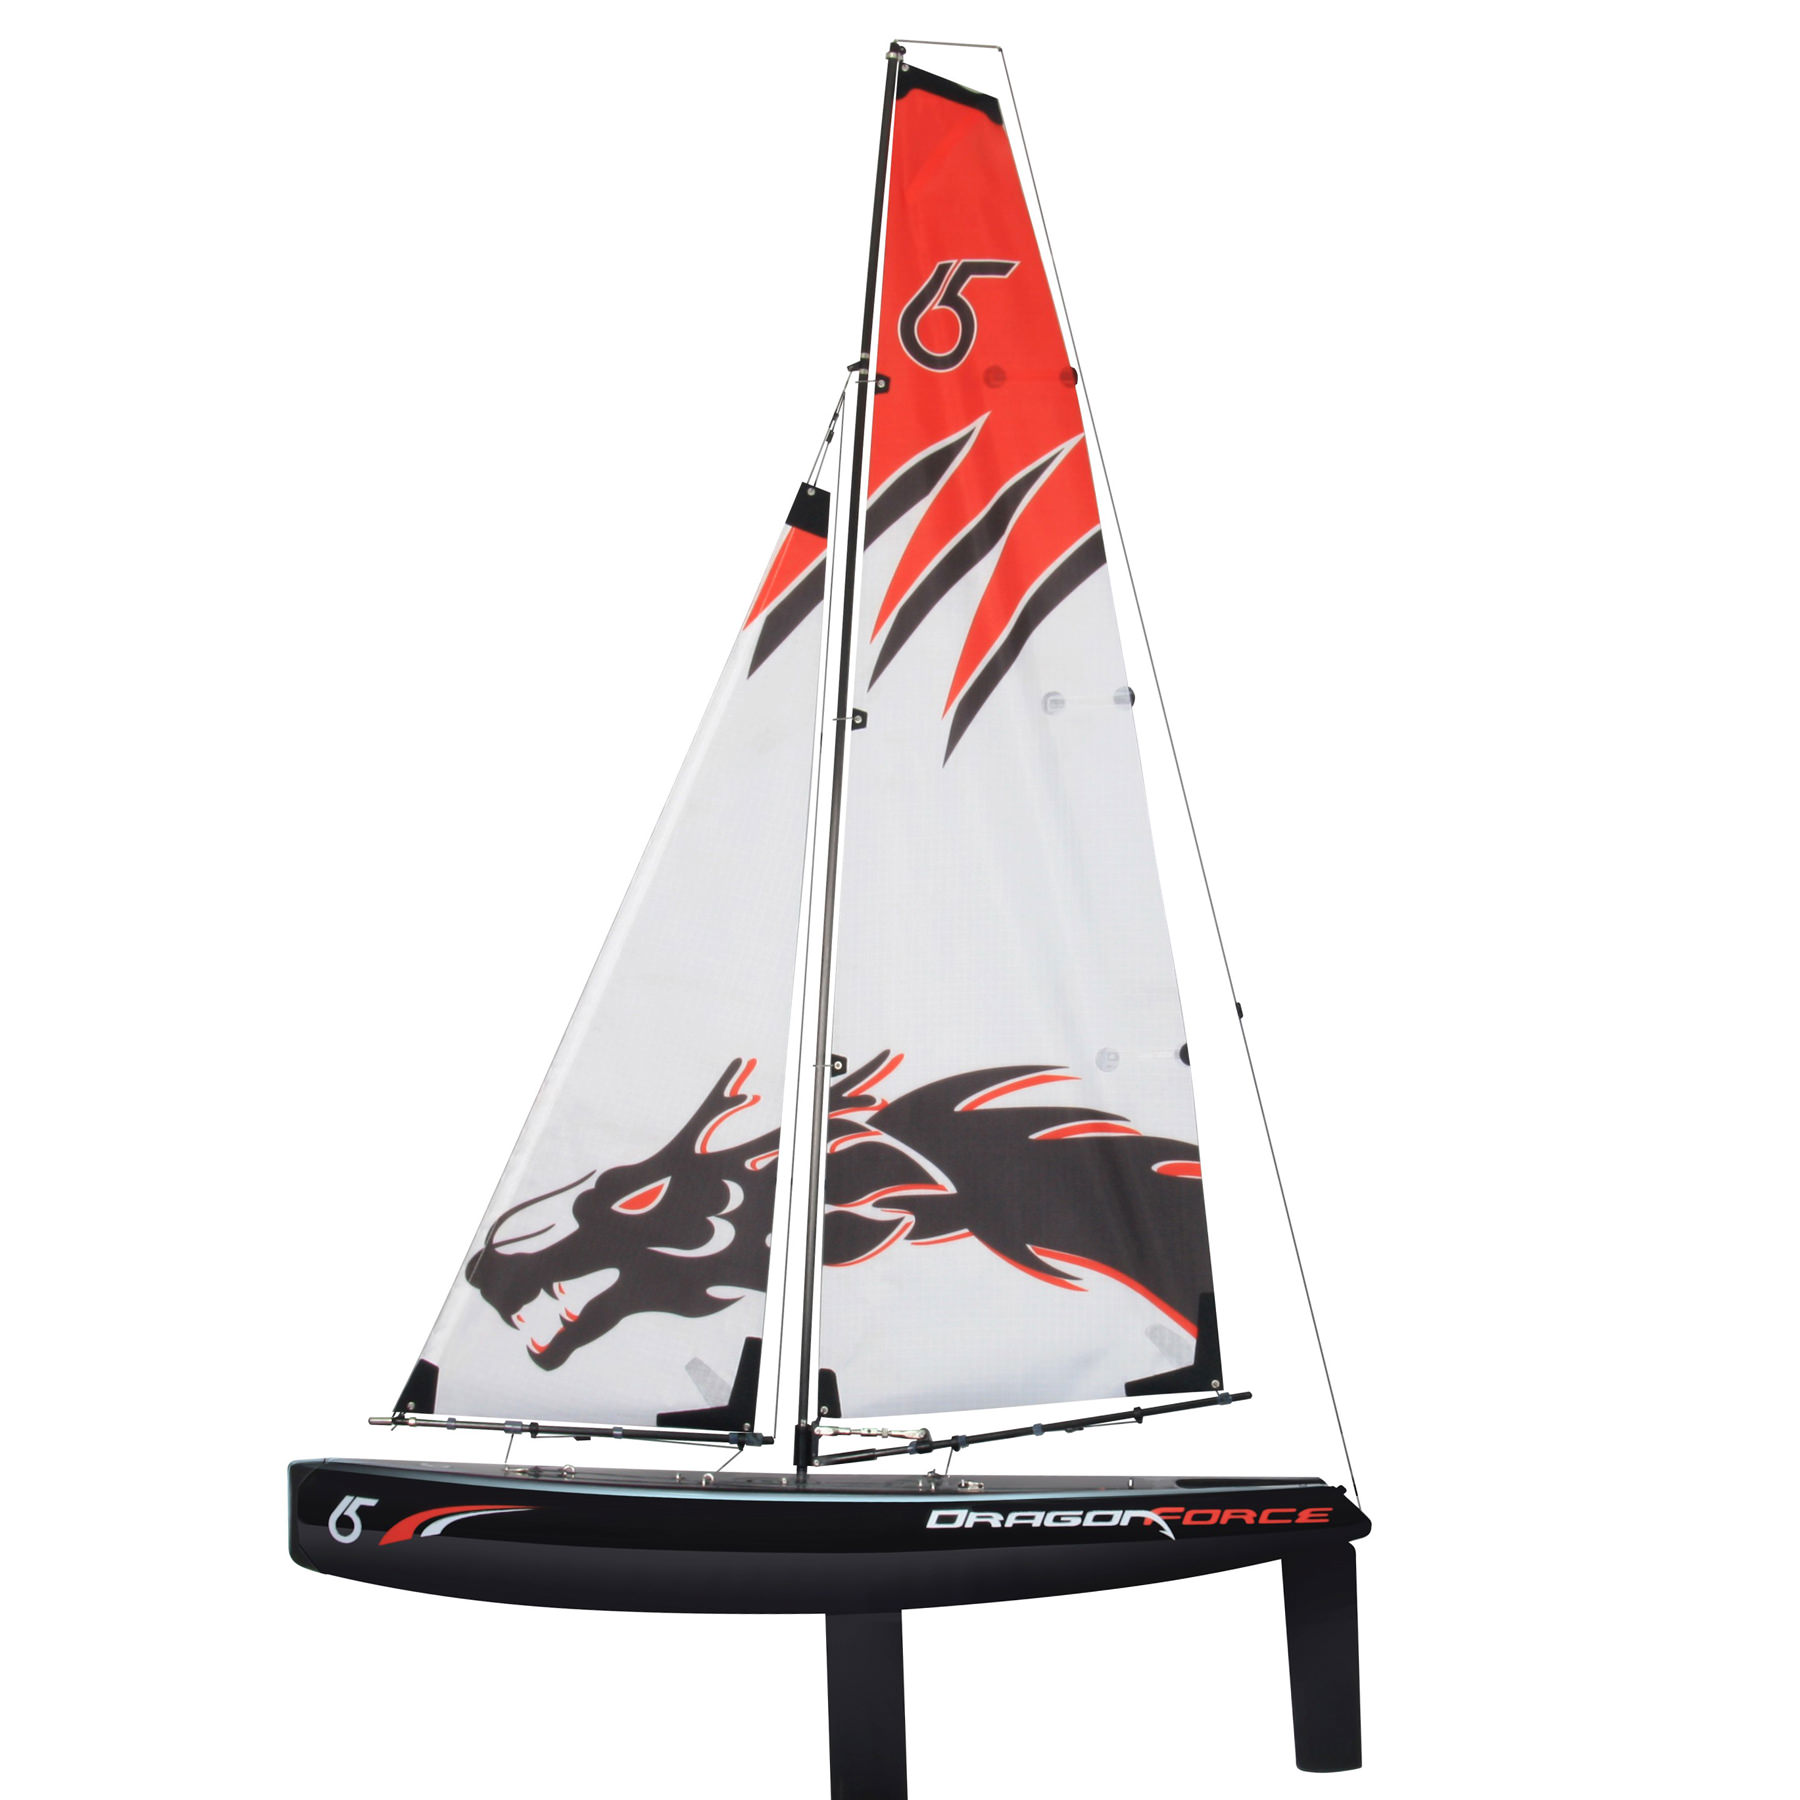 Joysway DragonForce 65 V5 2 4GHz RTR DF65 RG65 Class RC Yacht (includes  Transmitter & Receiver)